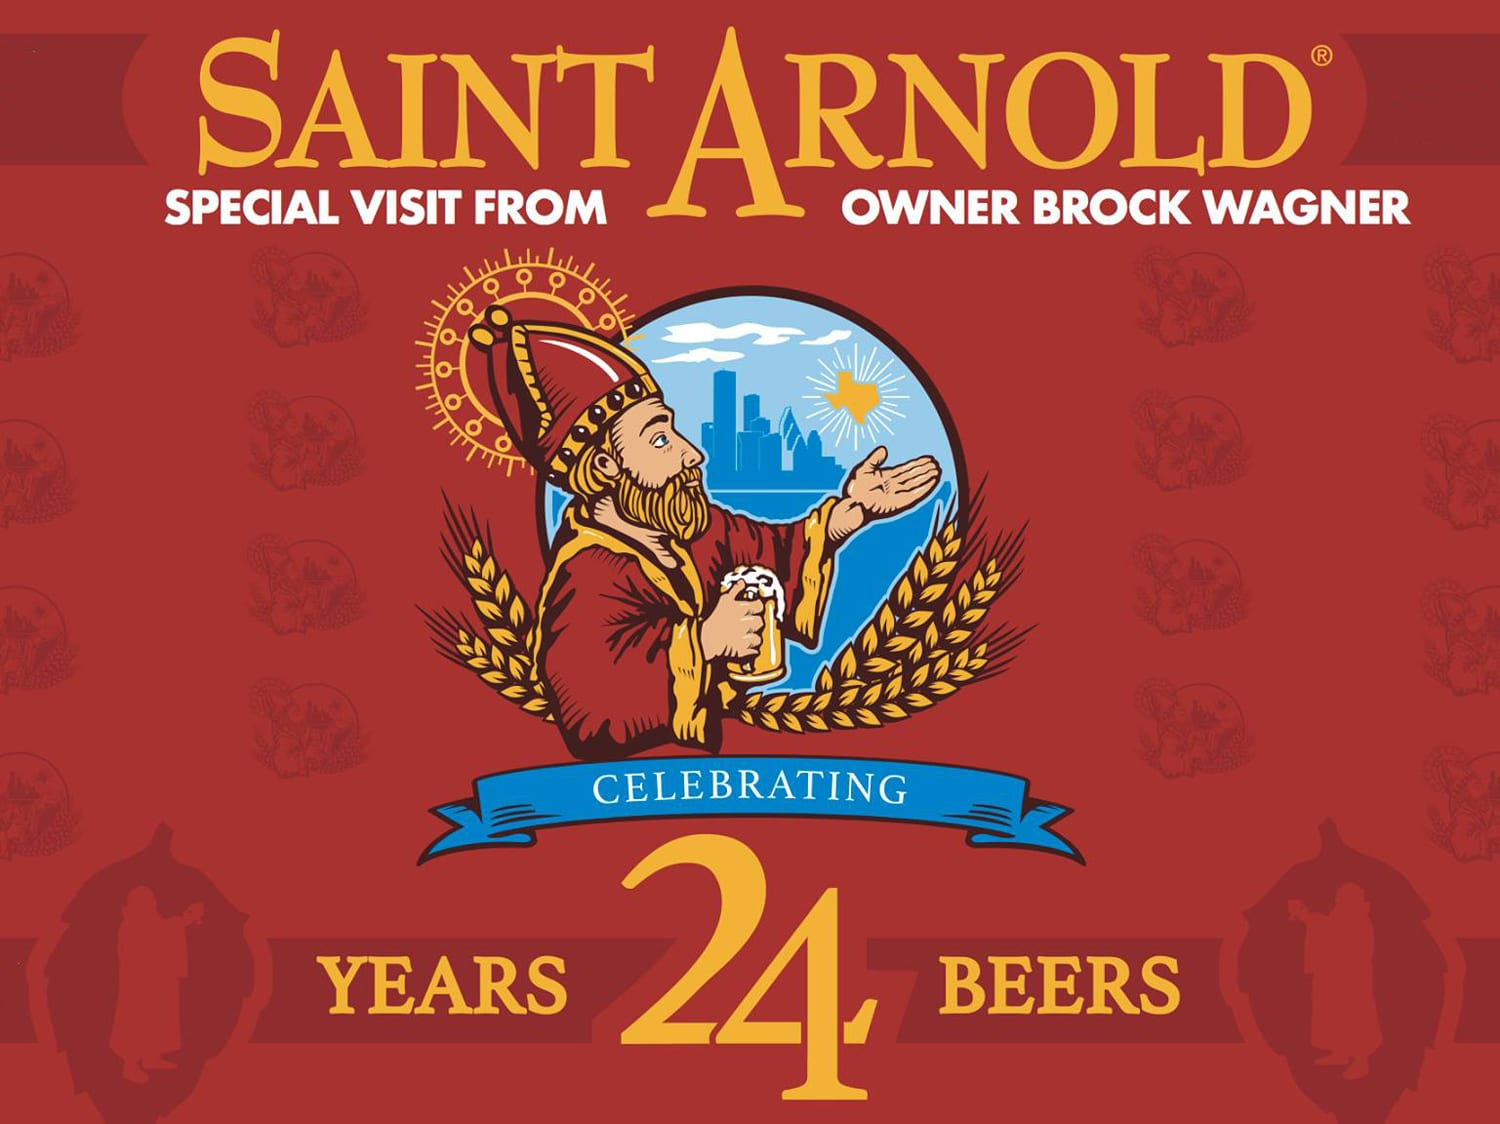 saint-arnold-brewing-event-image-sized